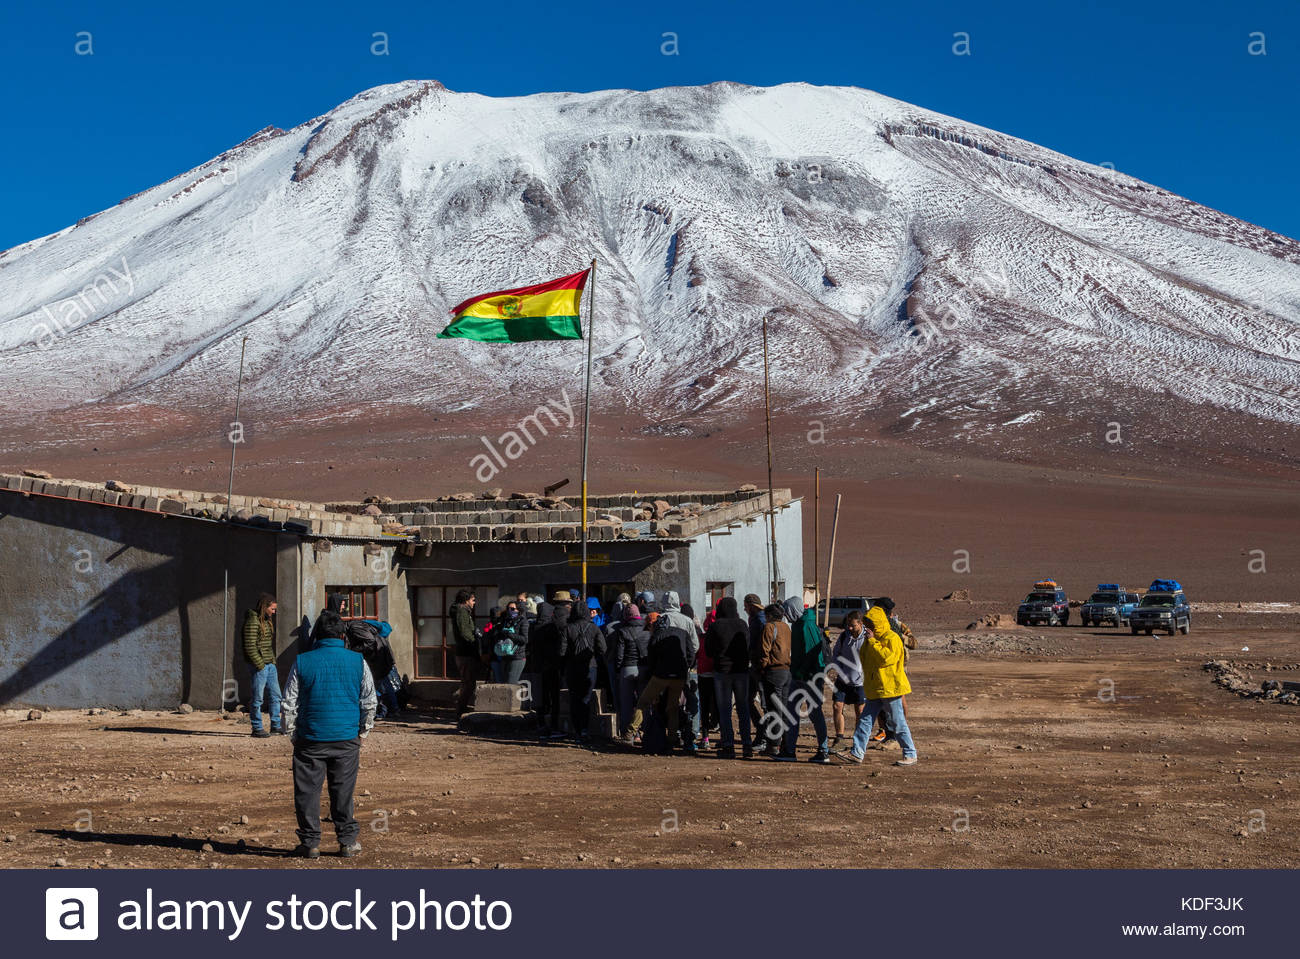 Border Bolivia Chile, next to Juriques Volcano - Stock Image